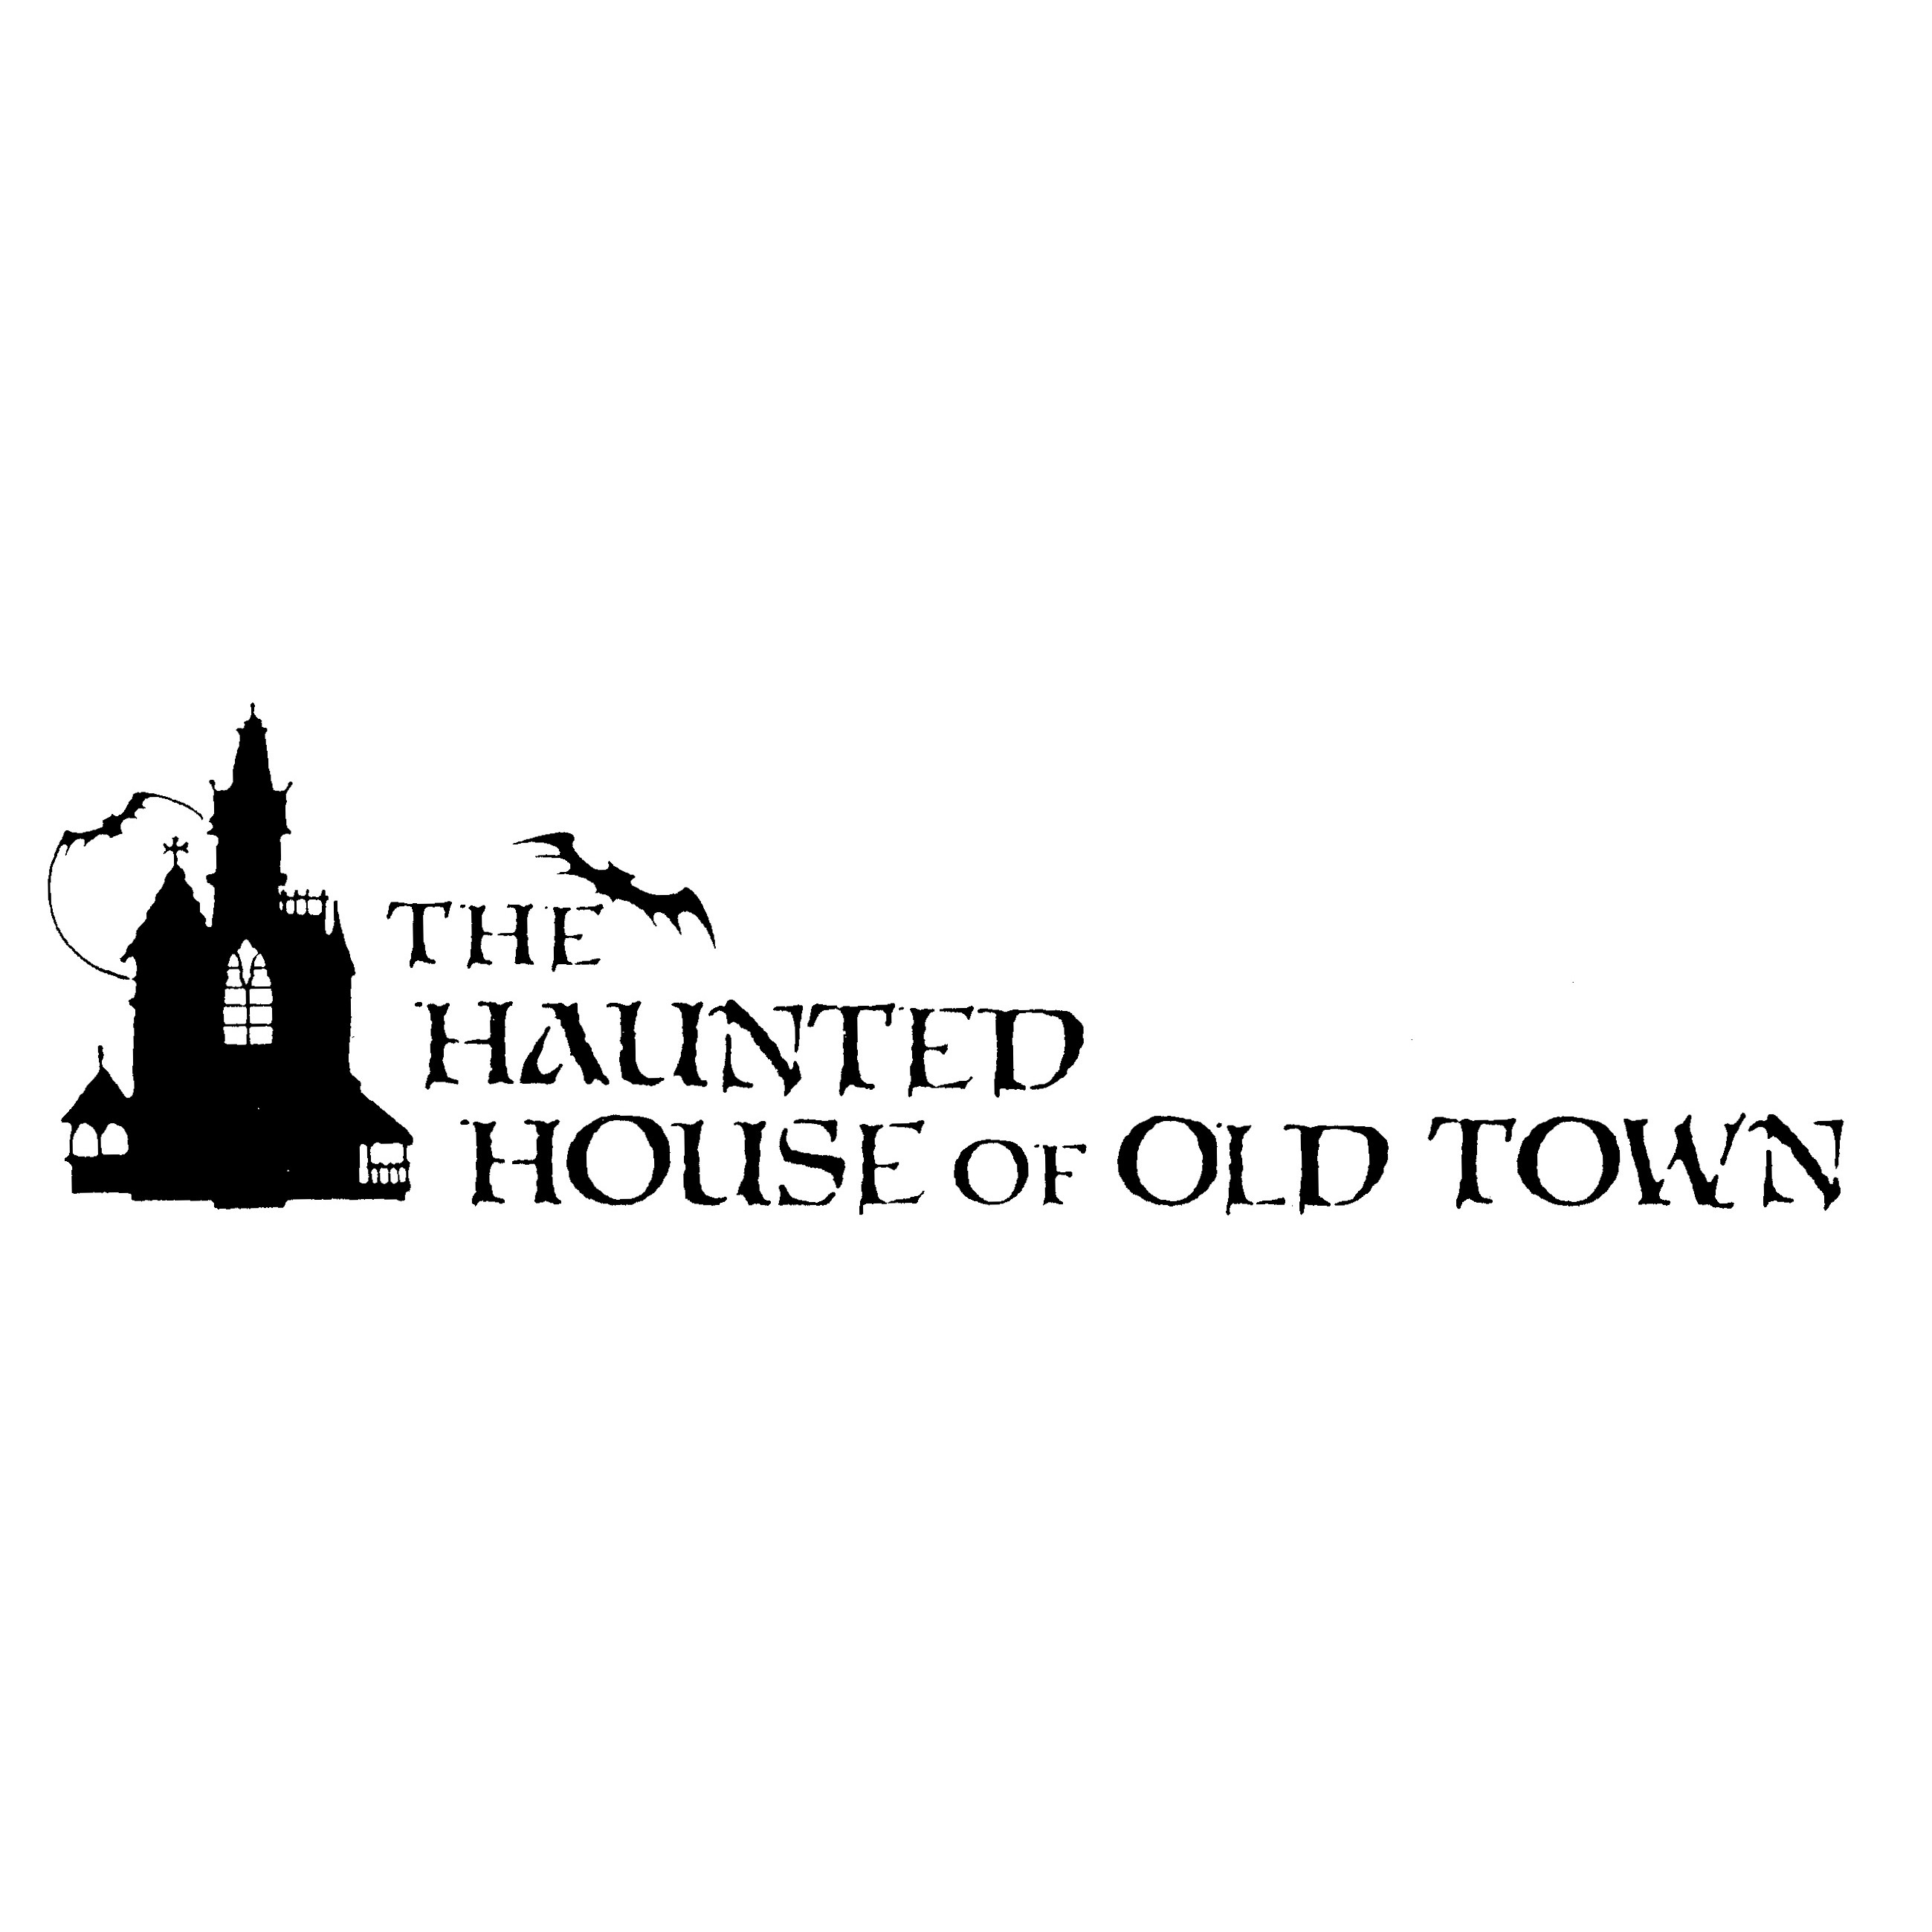 The Haunted Grimm House